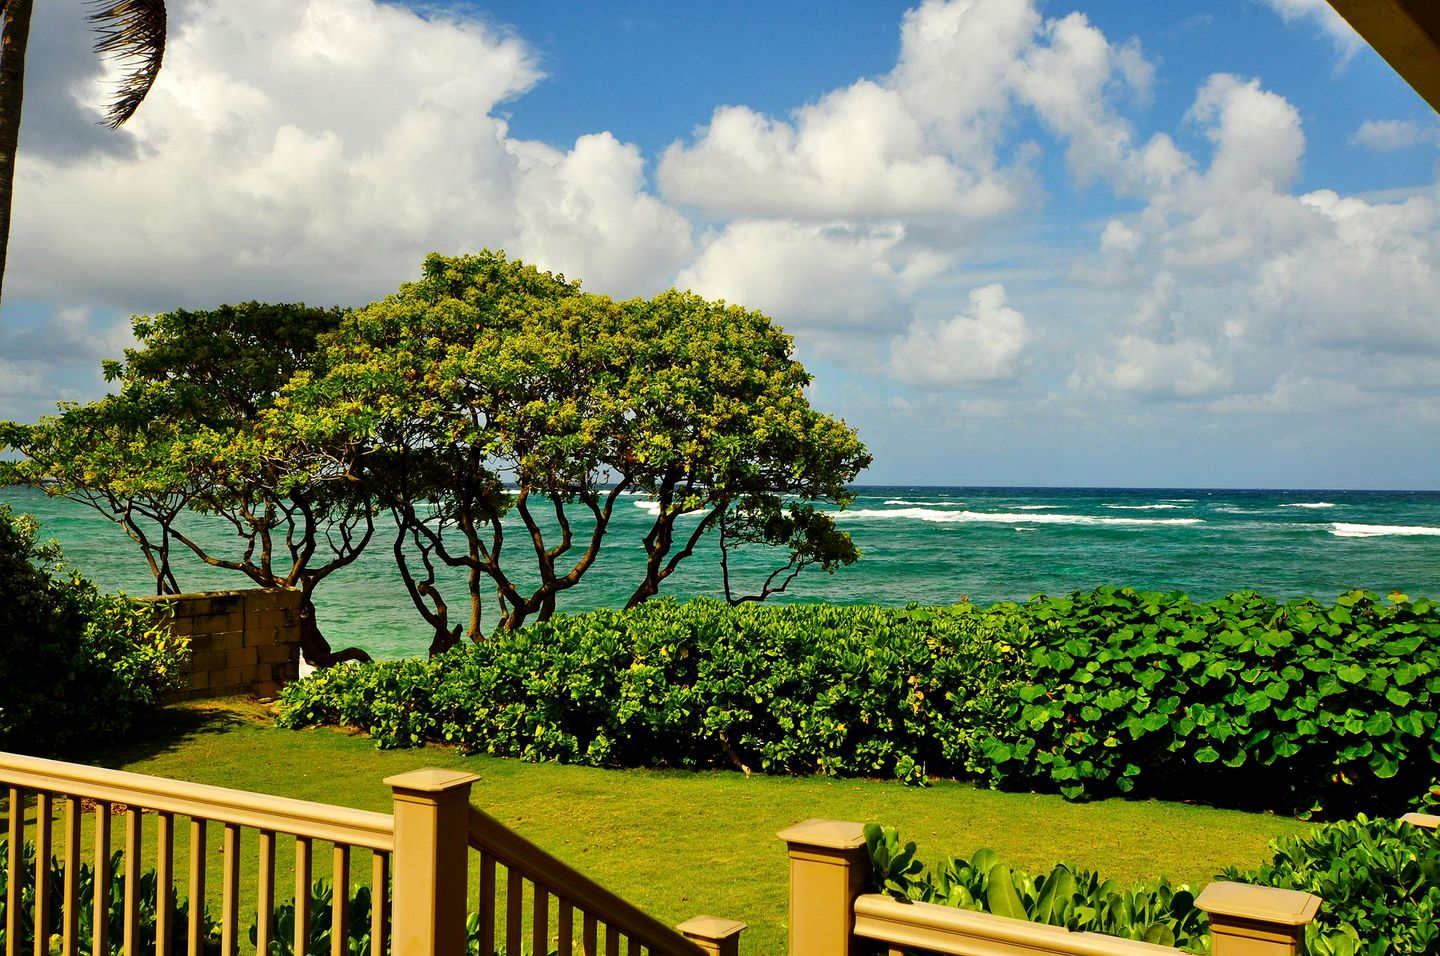 Beach Houses (Laie, Hawaii, United States)